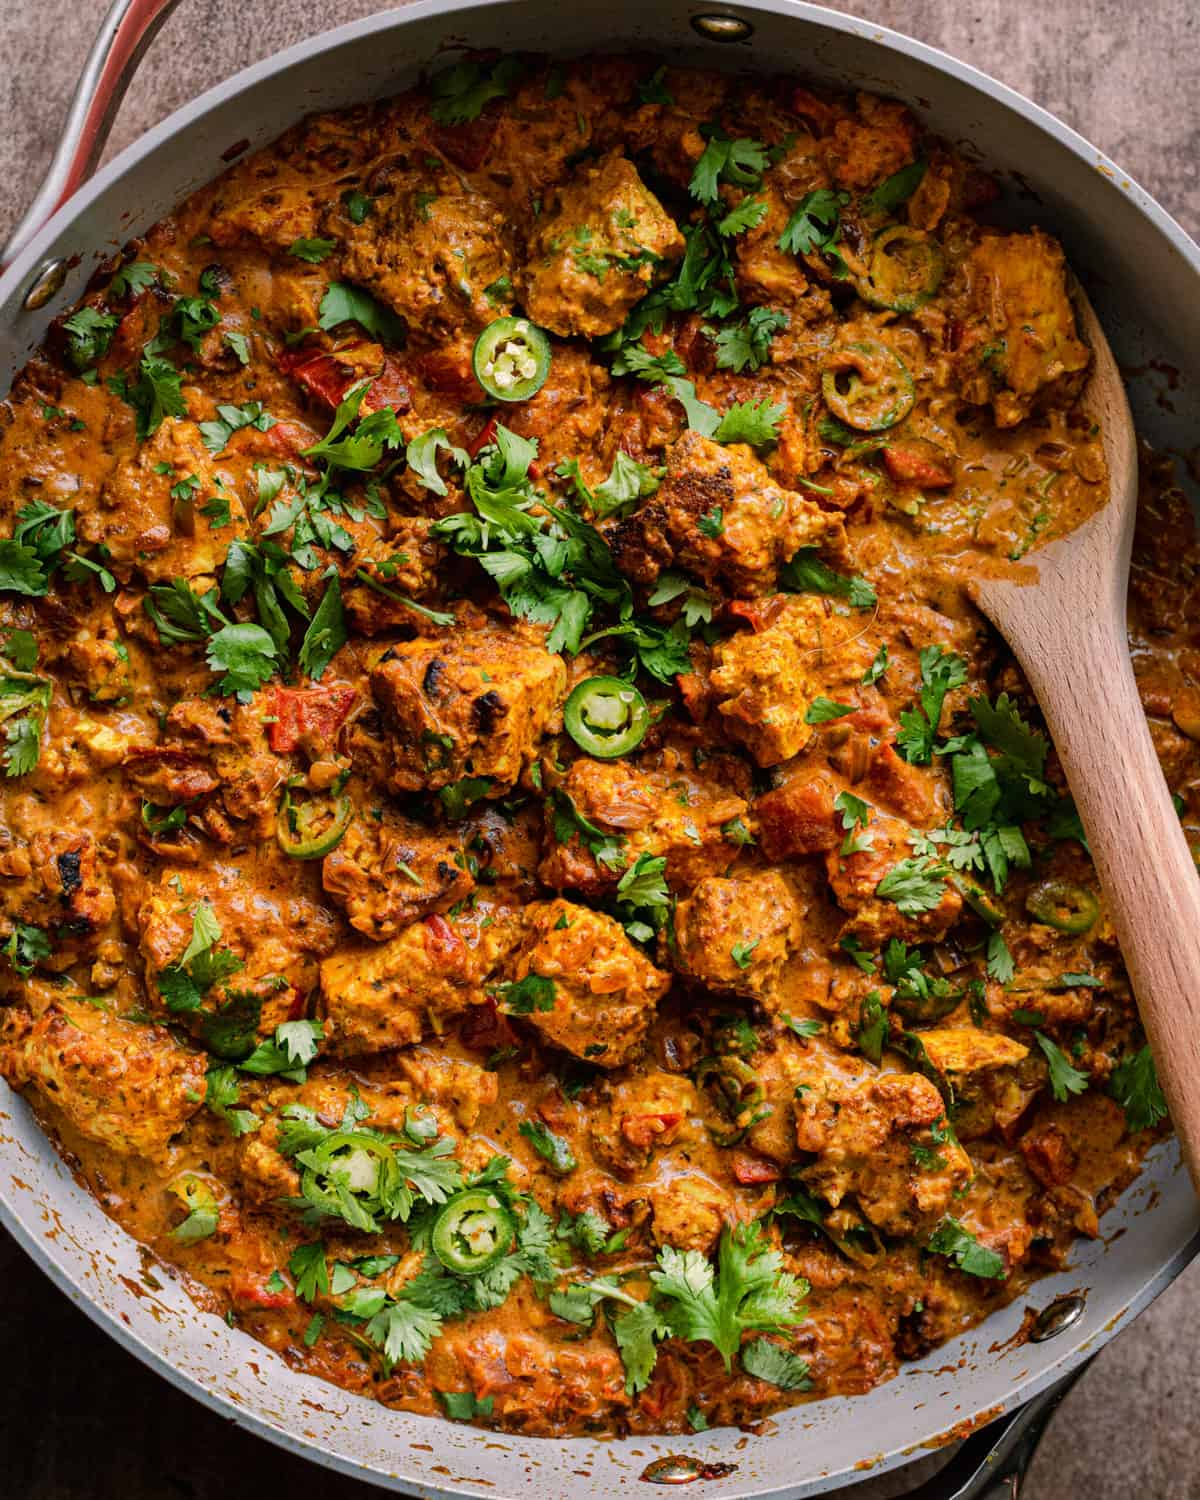 tofu tikka masala in a saute pan, garnished with cilantro and green chili peppers